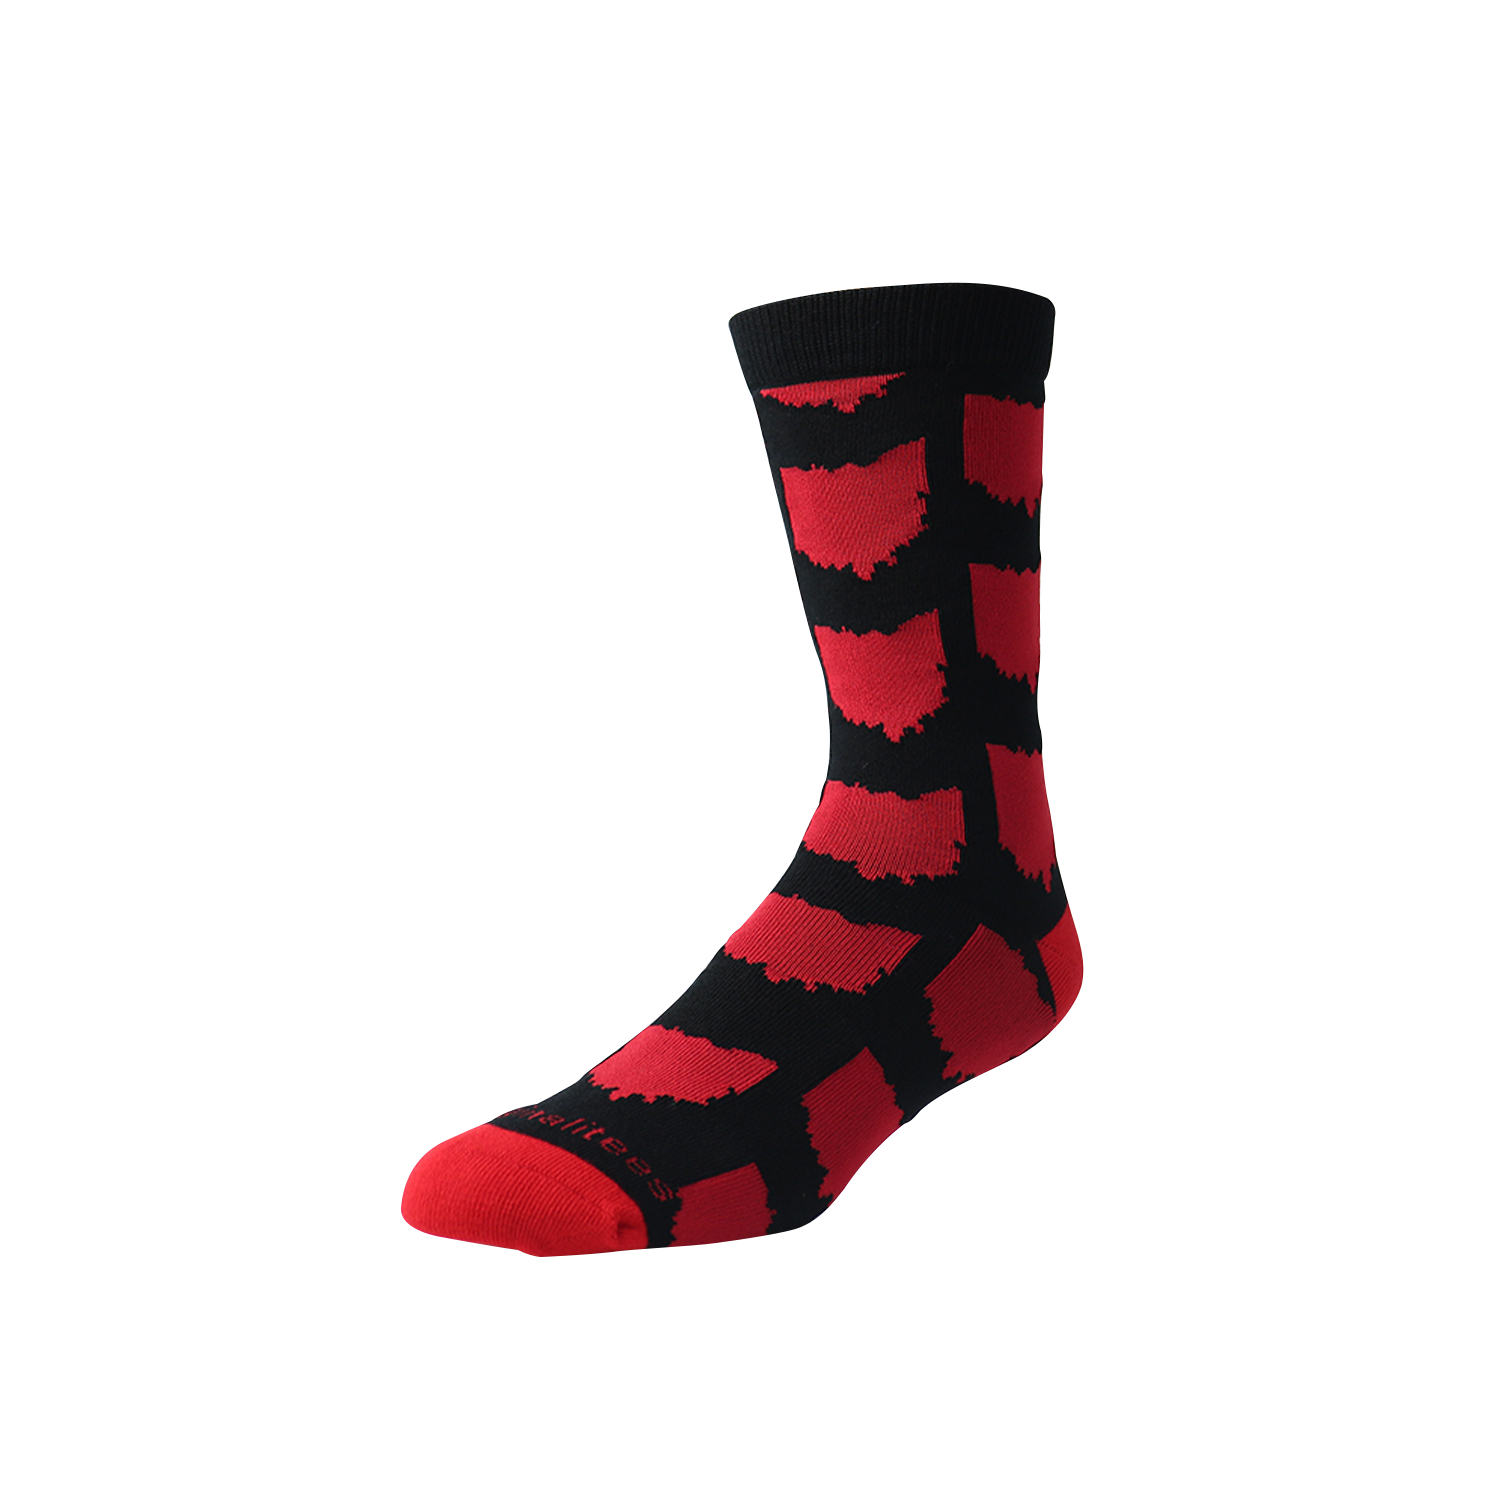 All Over OH Socks - Black/Red